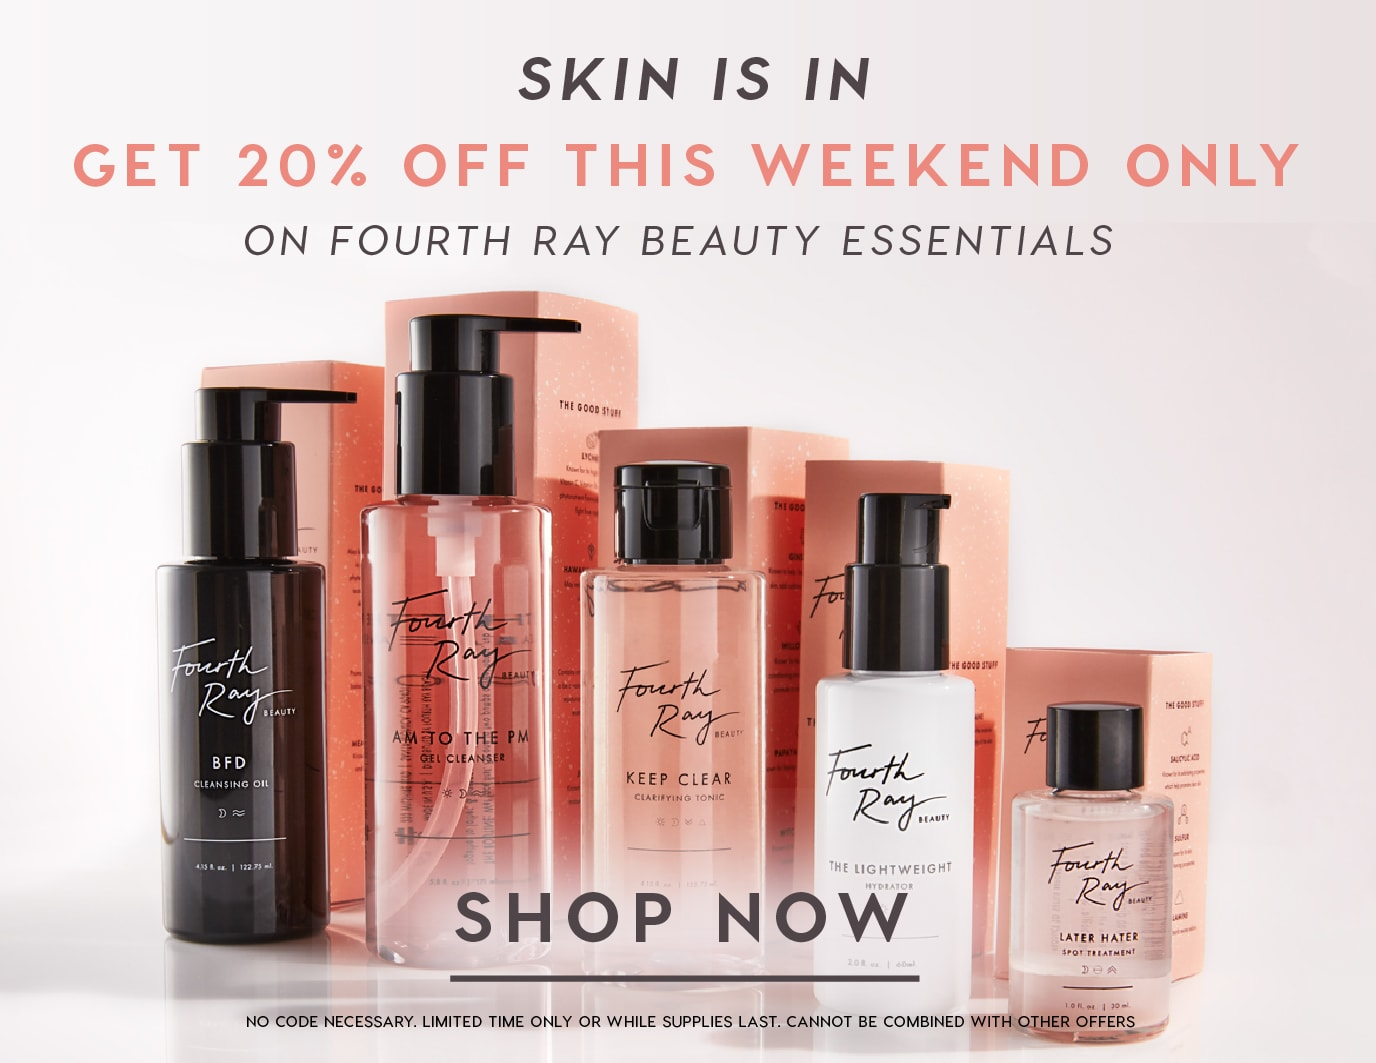 Fourth Ray Beauty Back to Basics 20% off Sale select skus